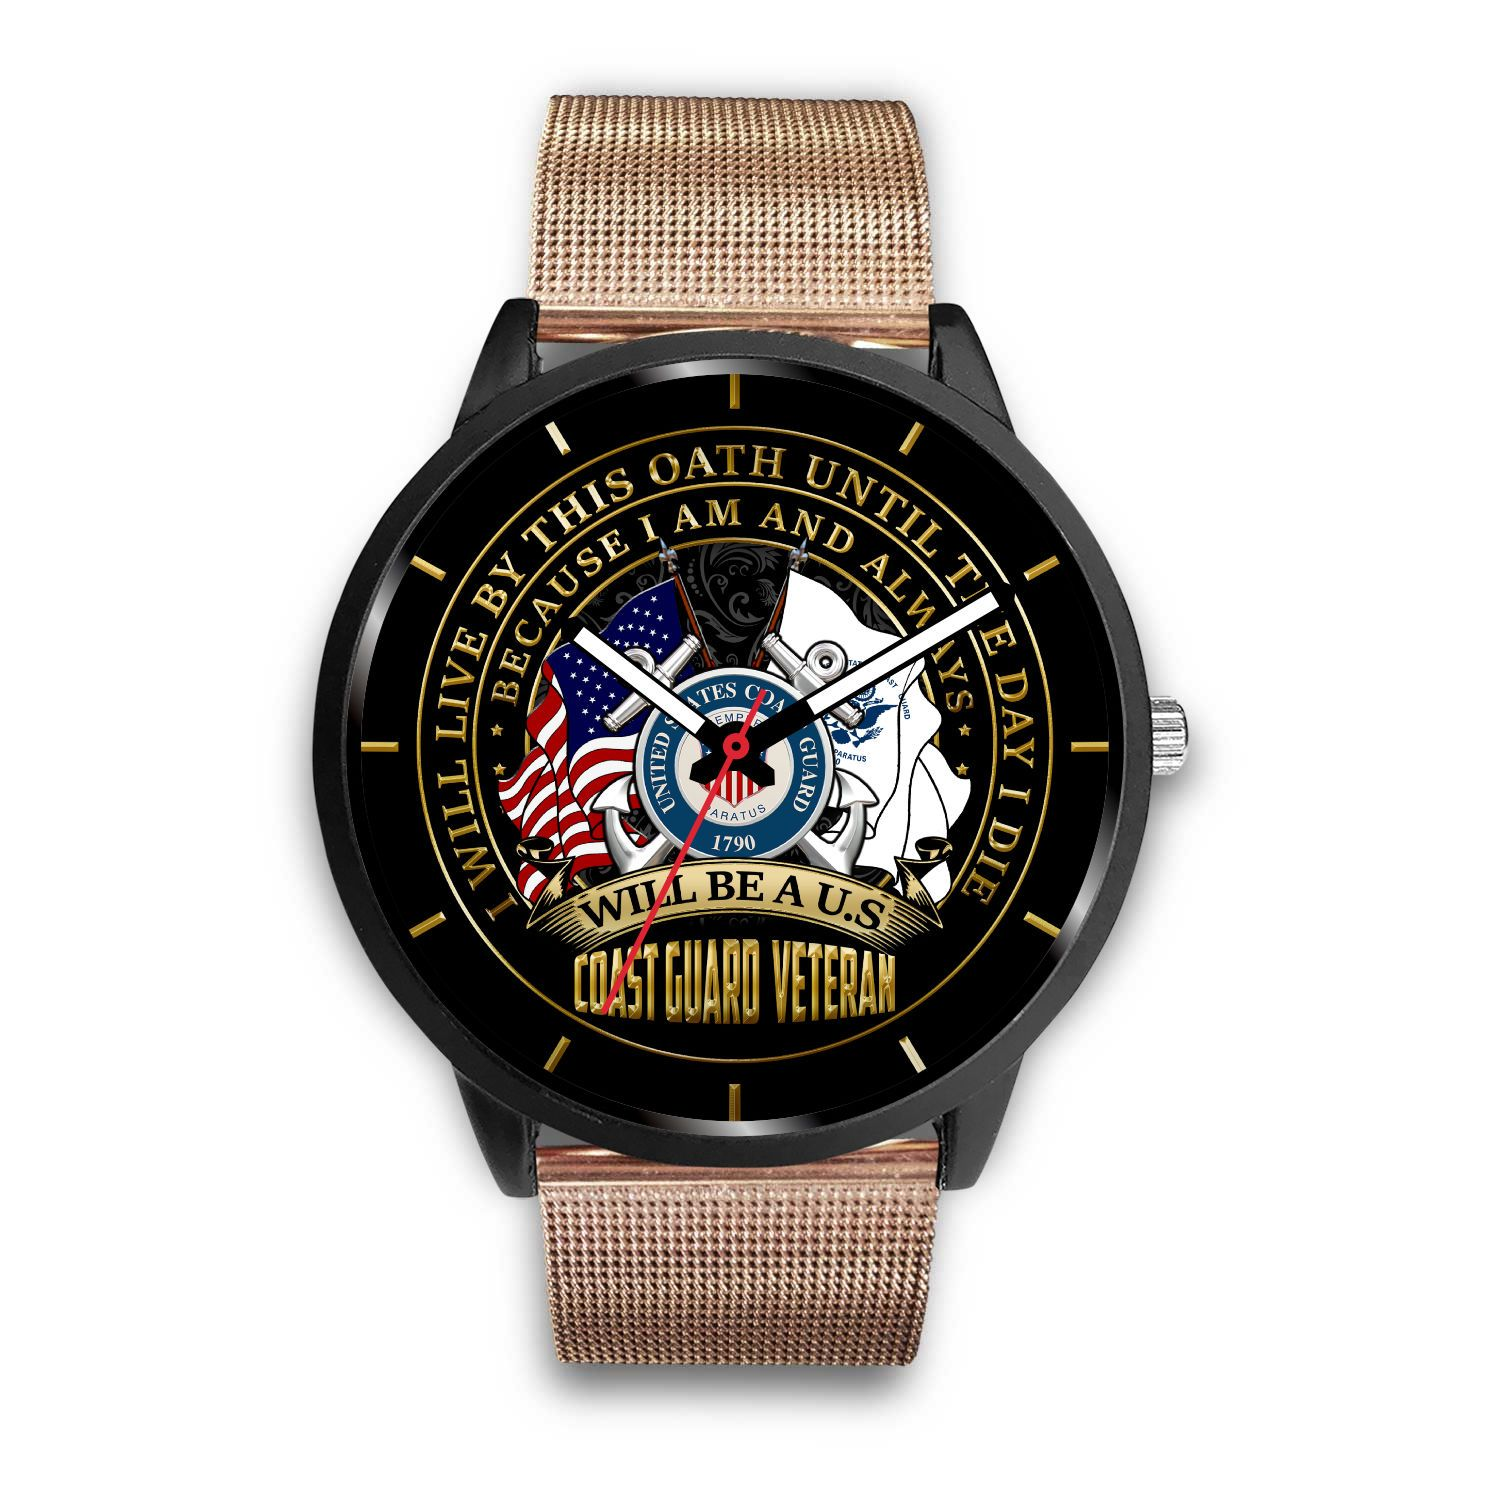 i-will-live_a8eac796-6a6b-cf62-a4c1-3f3185f6bc19 I WILL LIVE BY THIS OATH UNTIL THE DAY I DIE BECAUSE I AM AND ALWAYS WILL BE A U.S COAST GUARD VETERAN WATCH  %tag